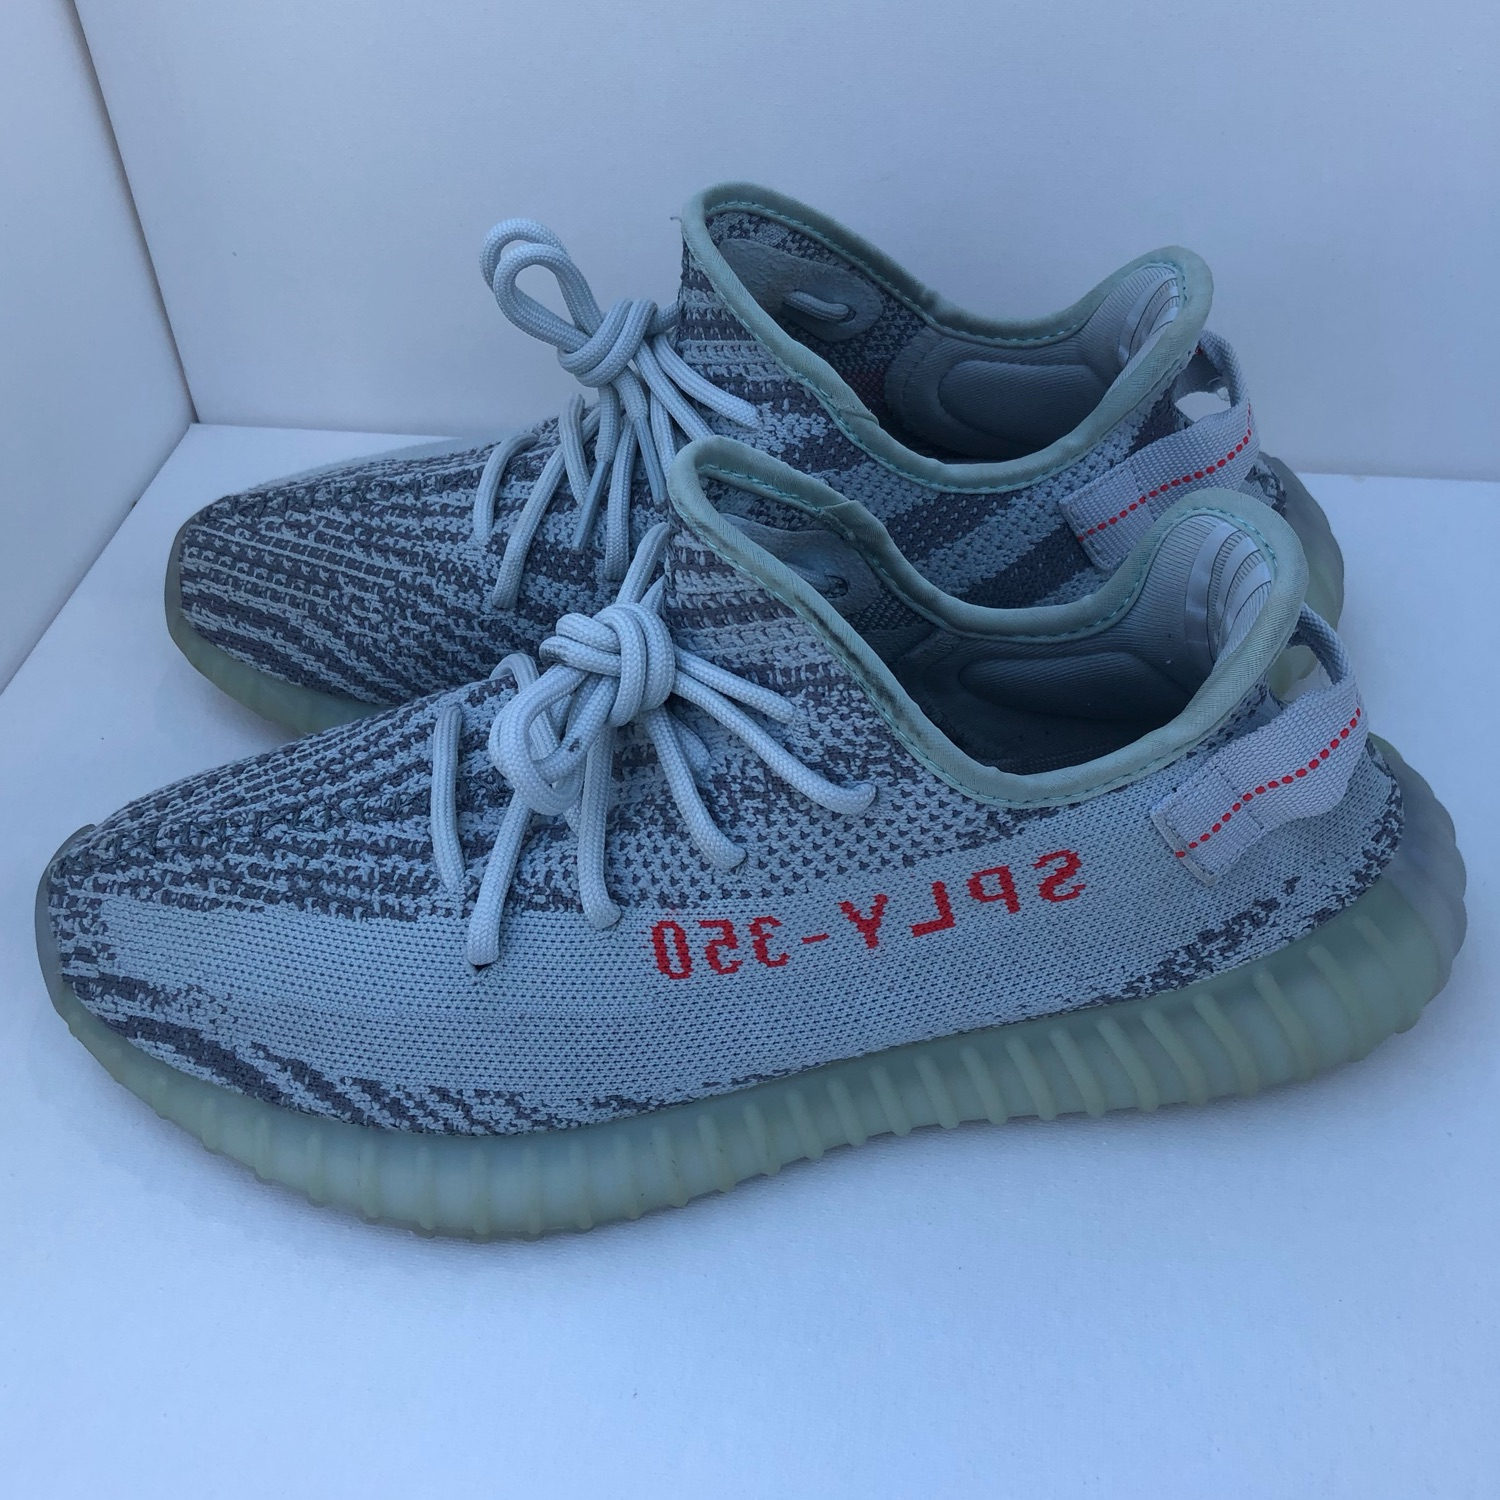 newest 21885 fcd20 Adidas Yeezy Boost 350 V2 Blue Tint